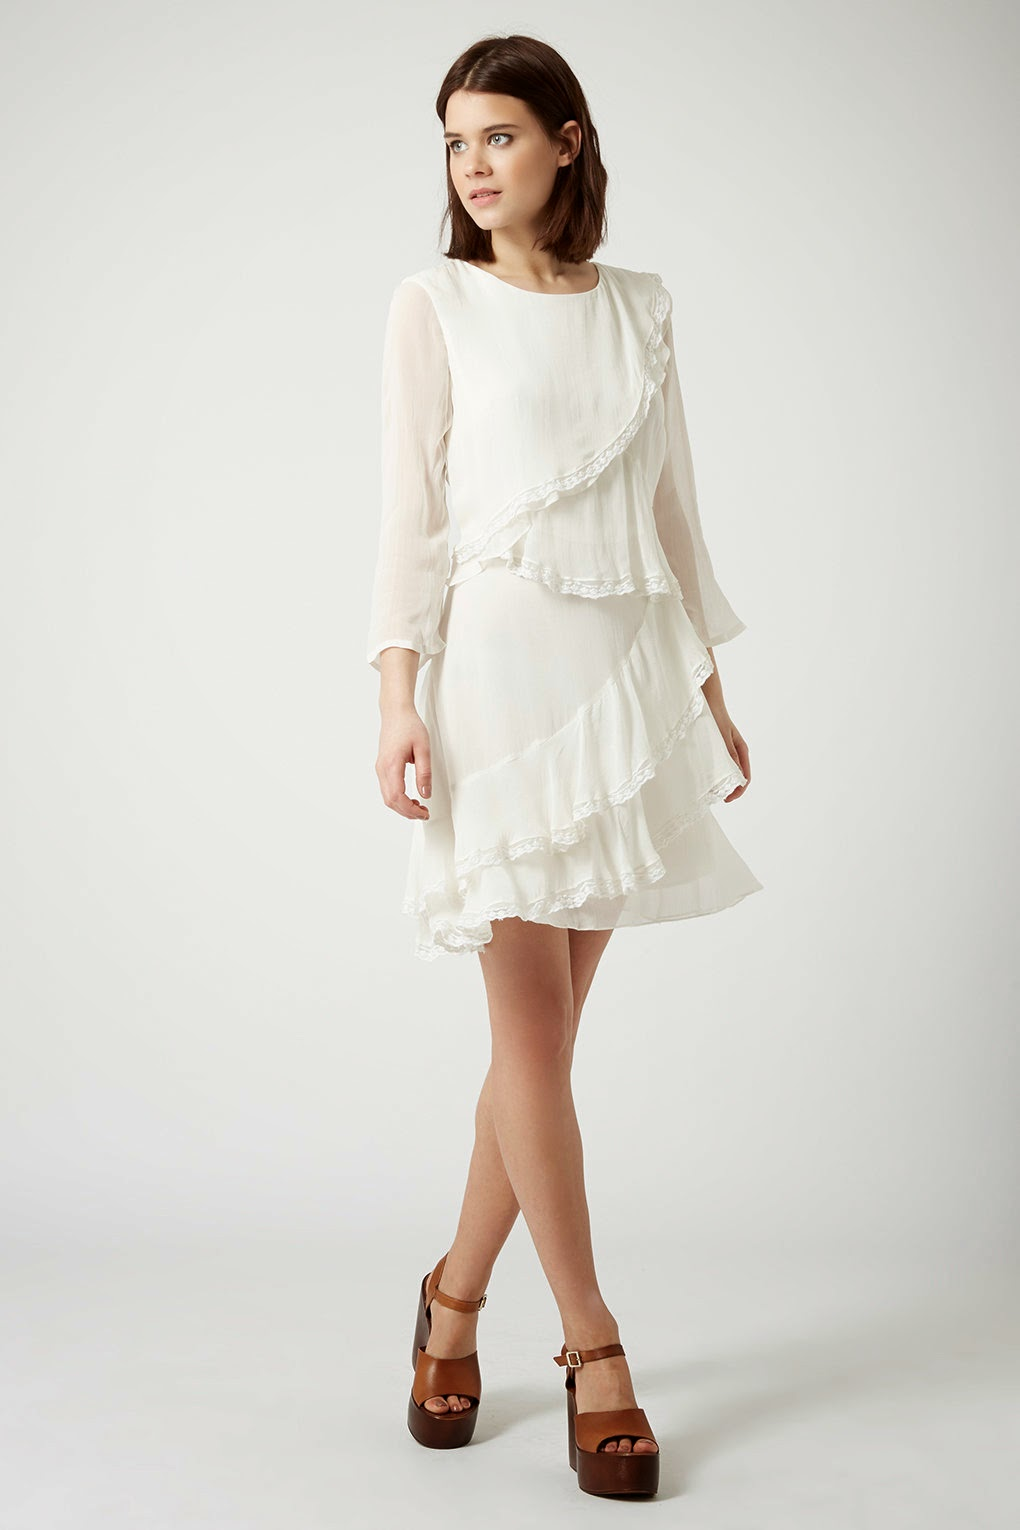 topshop white frilly dress,